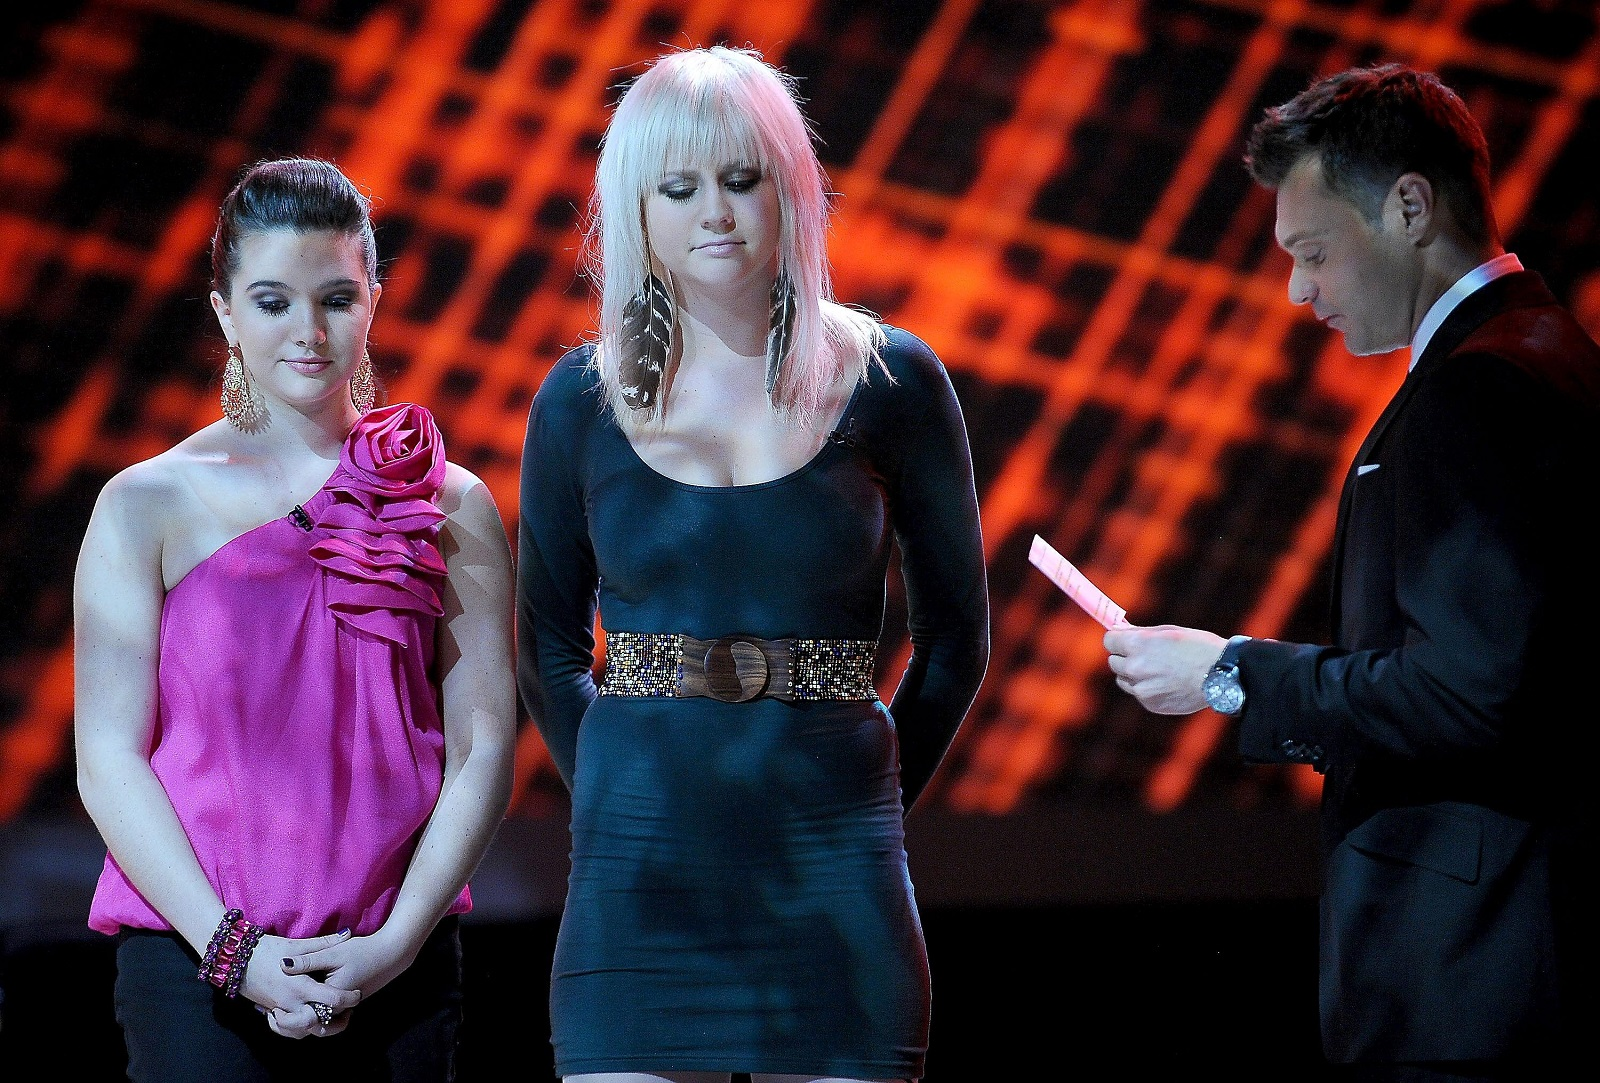 Aontestants Katie Stevens, left, Lilly Scott and host Ryan Seacrest, right, during American Idol Season 9 in 2010, in Los Angeles. The show is coming back to TV in 2018, this time on ABC. (Photo by Michael Becker/PictureGroup for FOX)